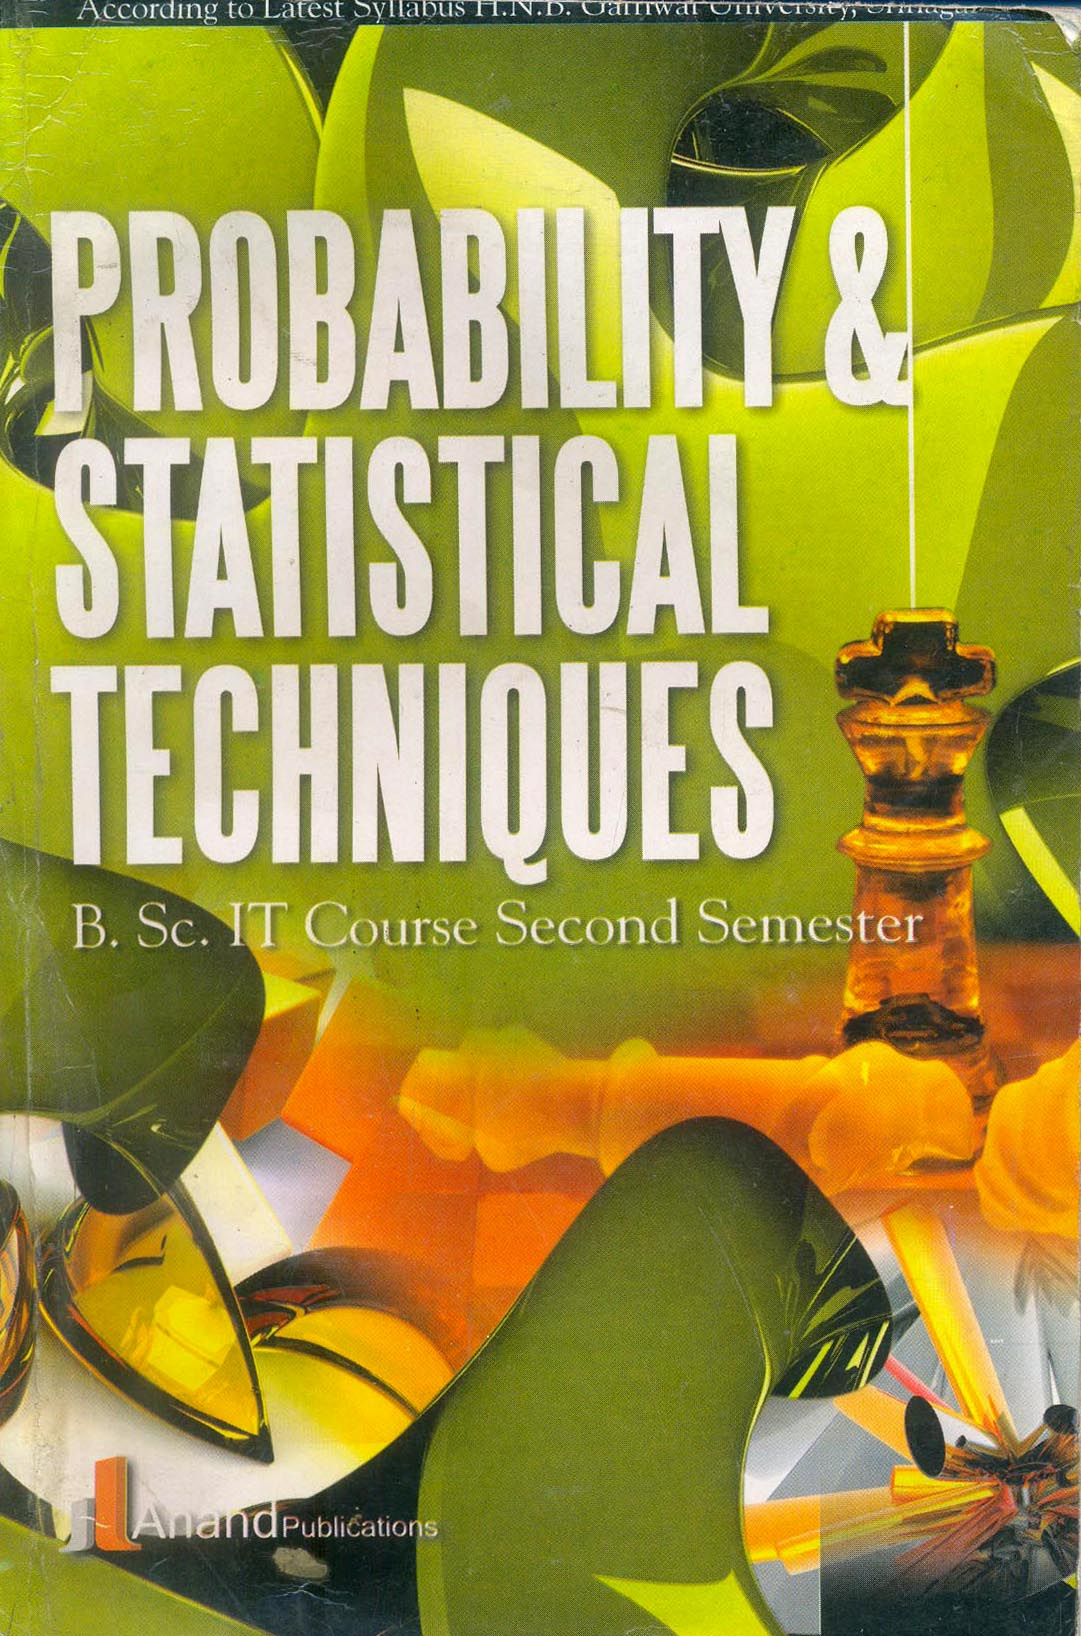 204 PROBABILITY & STATISTICAL TECHNIQUES